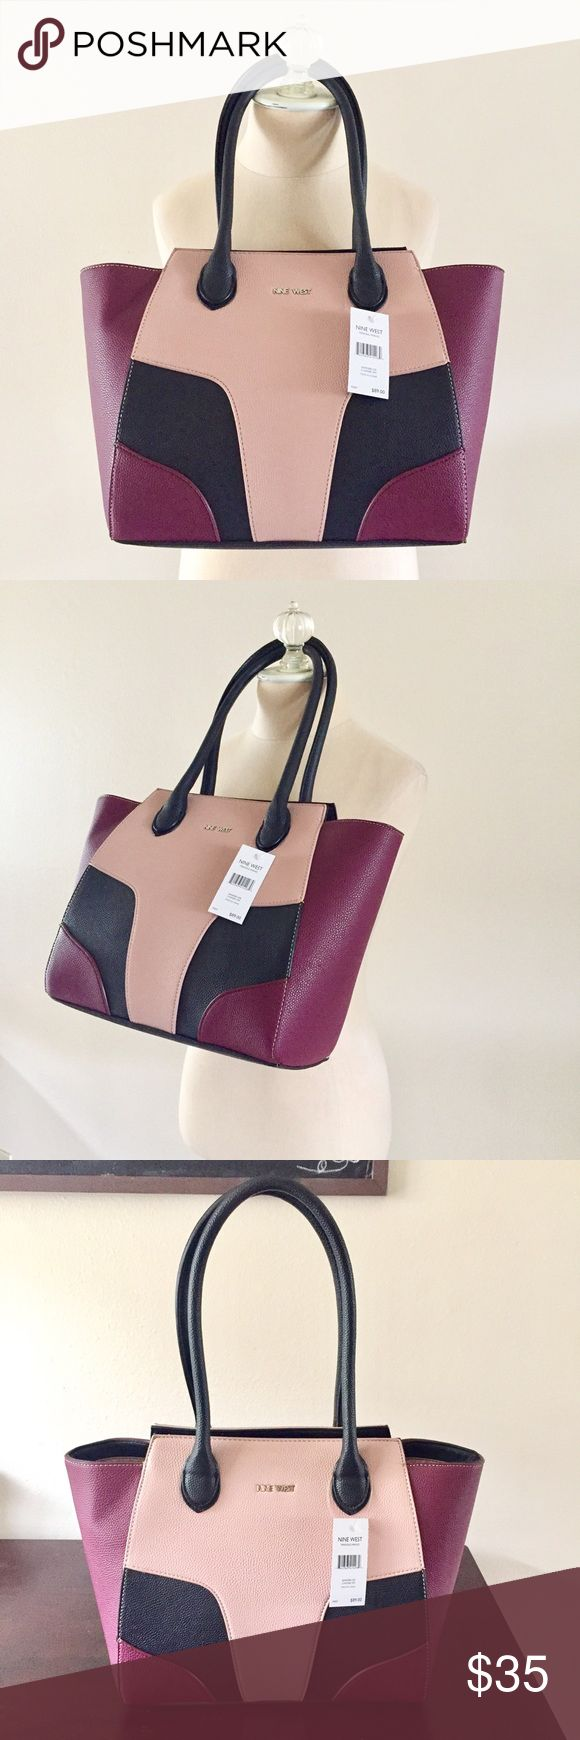 NWT Pink and Plum Nine West Shoulder Bag Brand New Nine West purse features pale pink and plum color block pattern. Gorgeous feminine, chic colors. 16 x 11.5 x 6 inch dimensions make it the perfect size tote! Nine West Bags Shoulder Bags